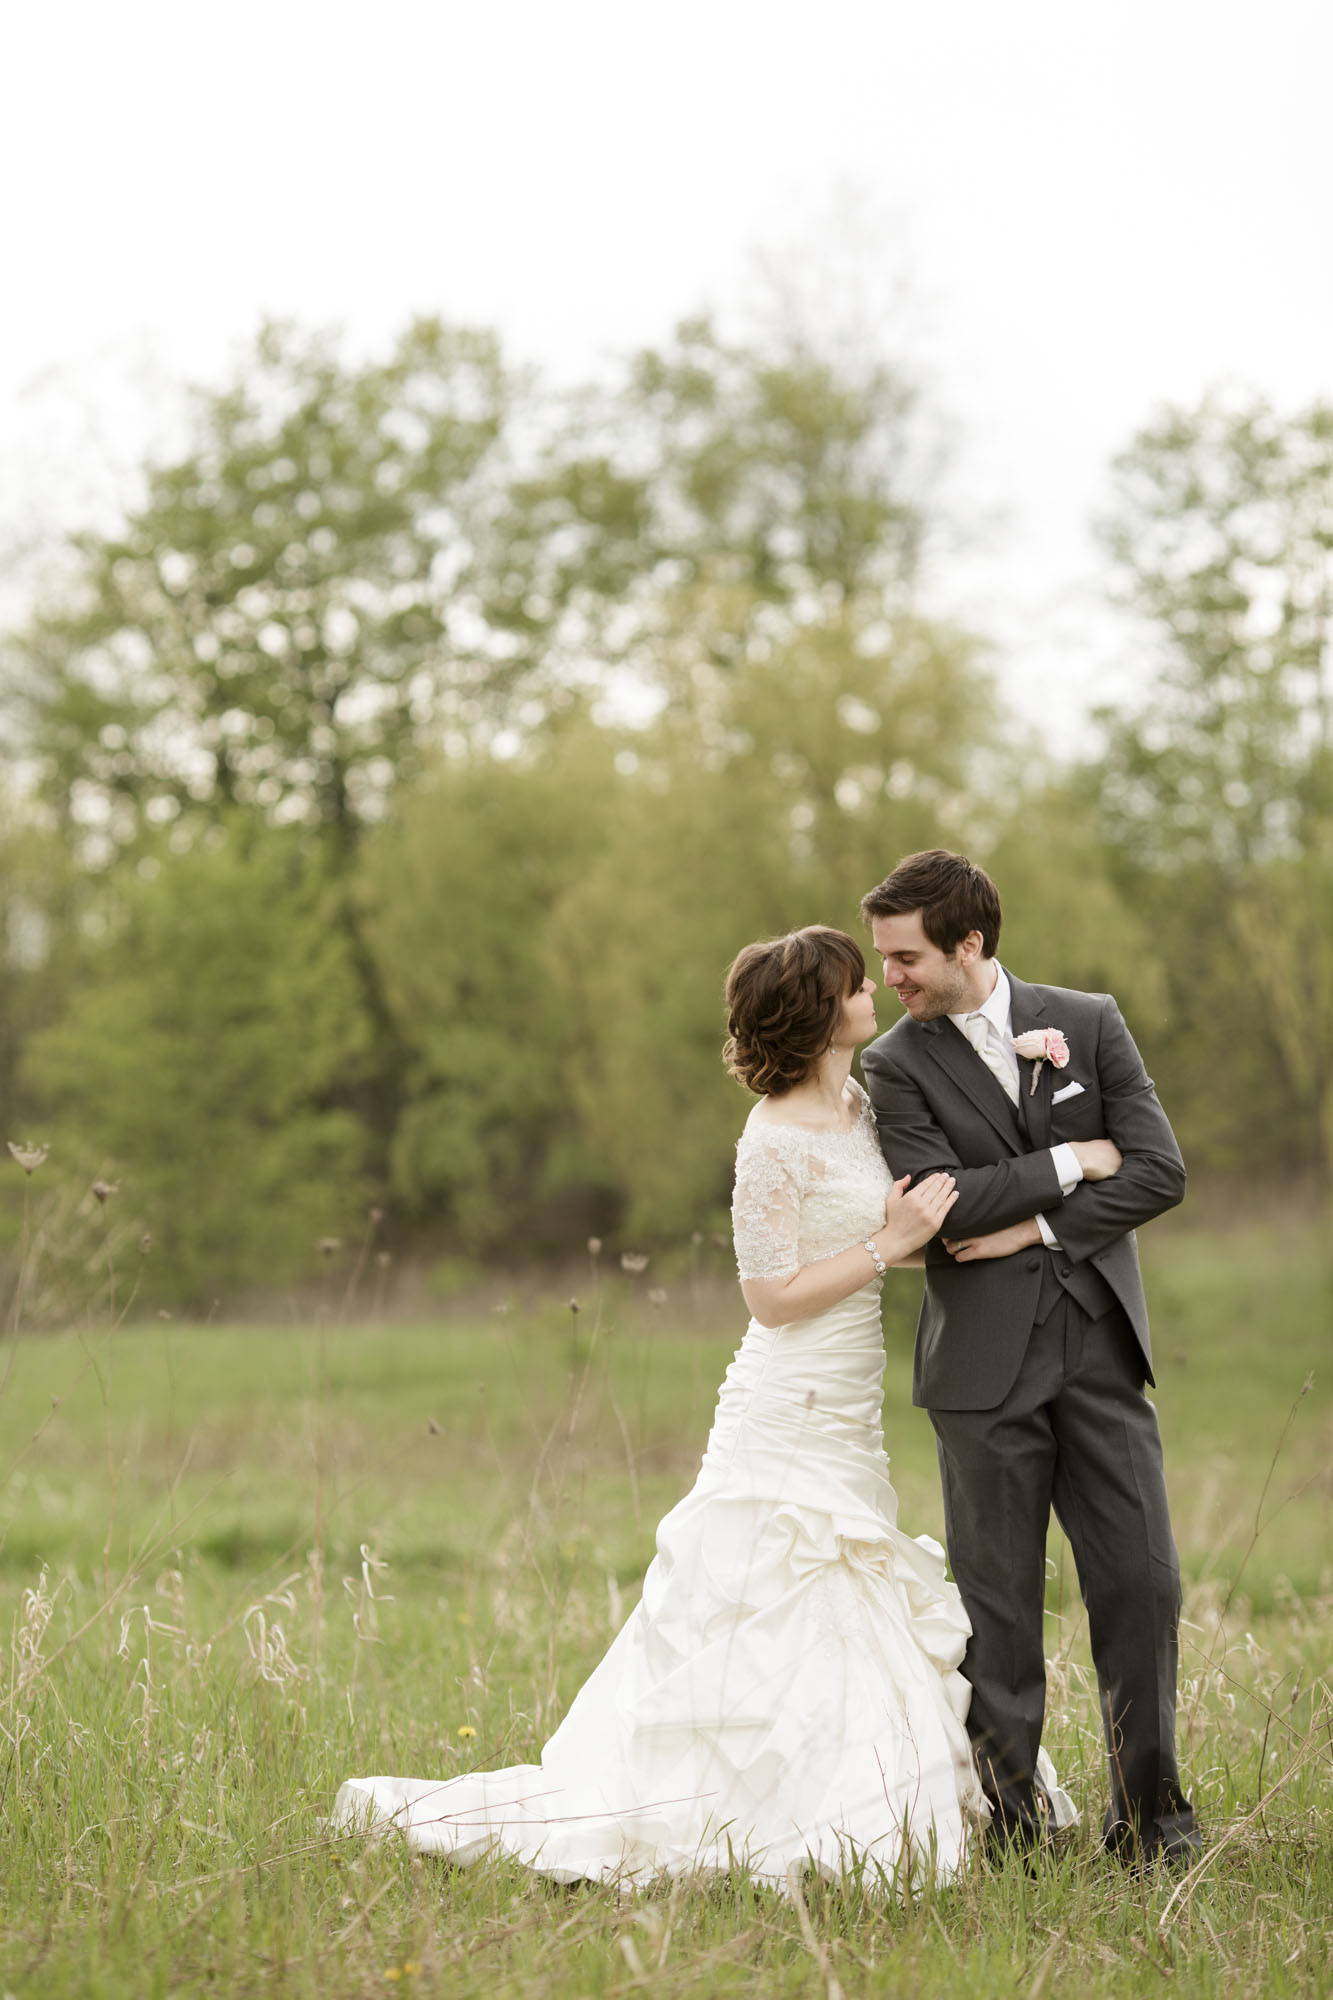 Wedding Photography Fusion At The Gibson Centre In Alliston On Darlington Studios